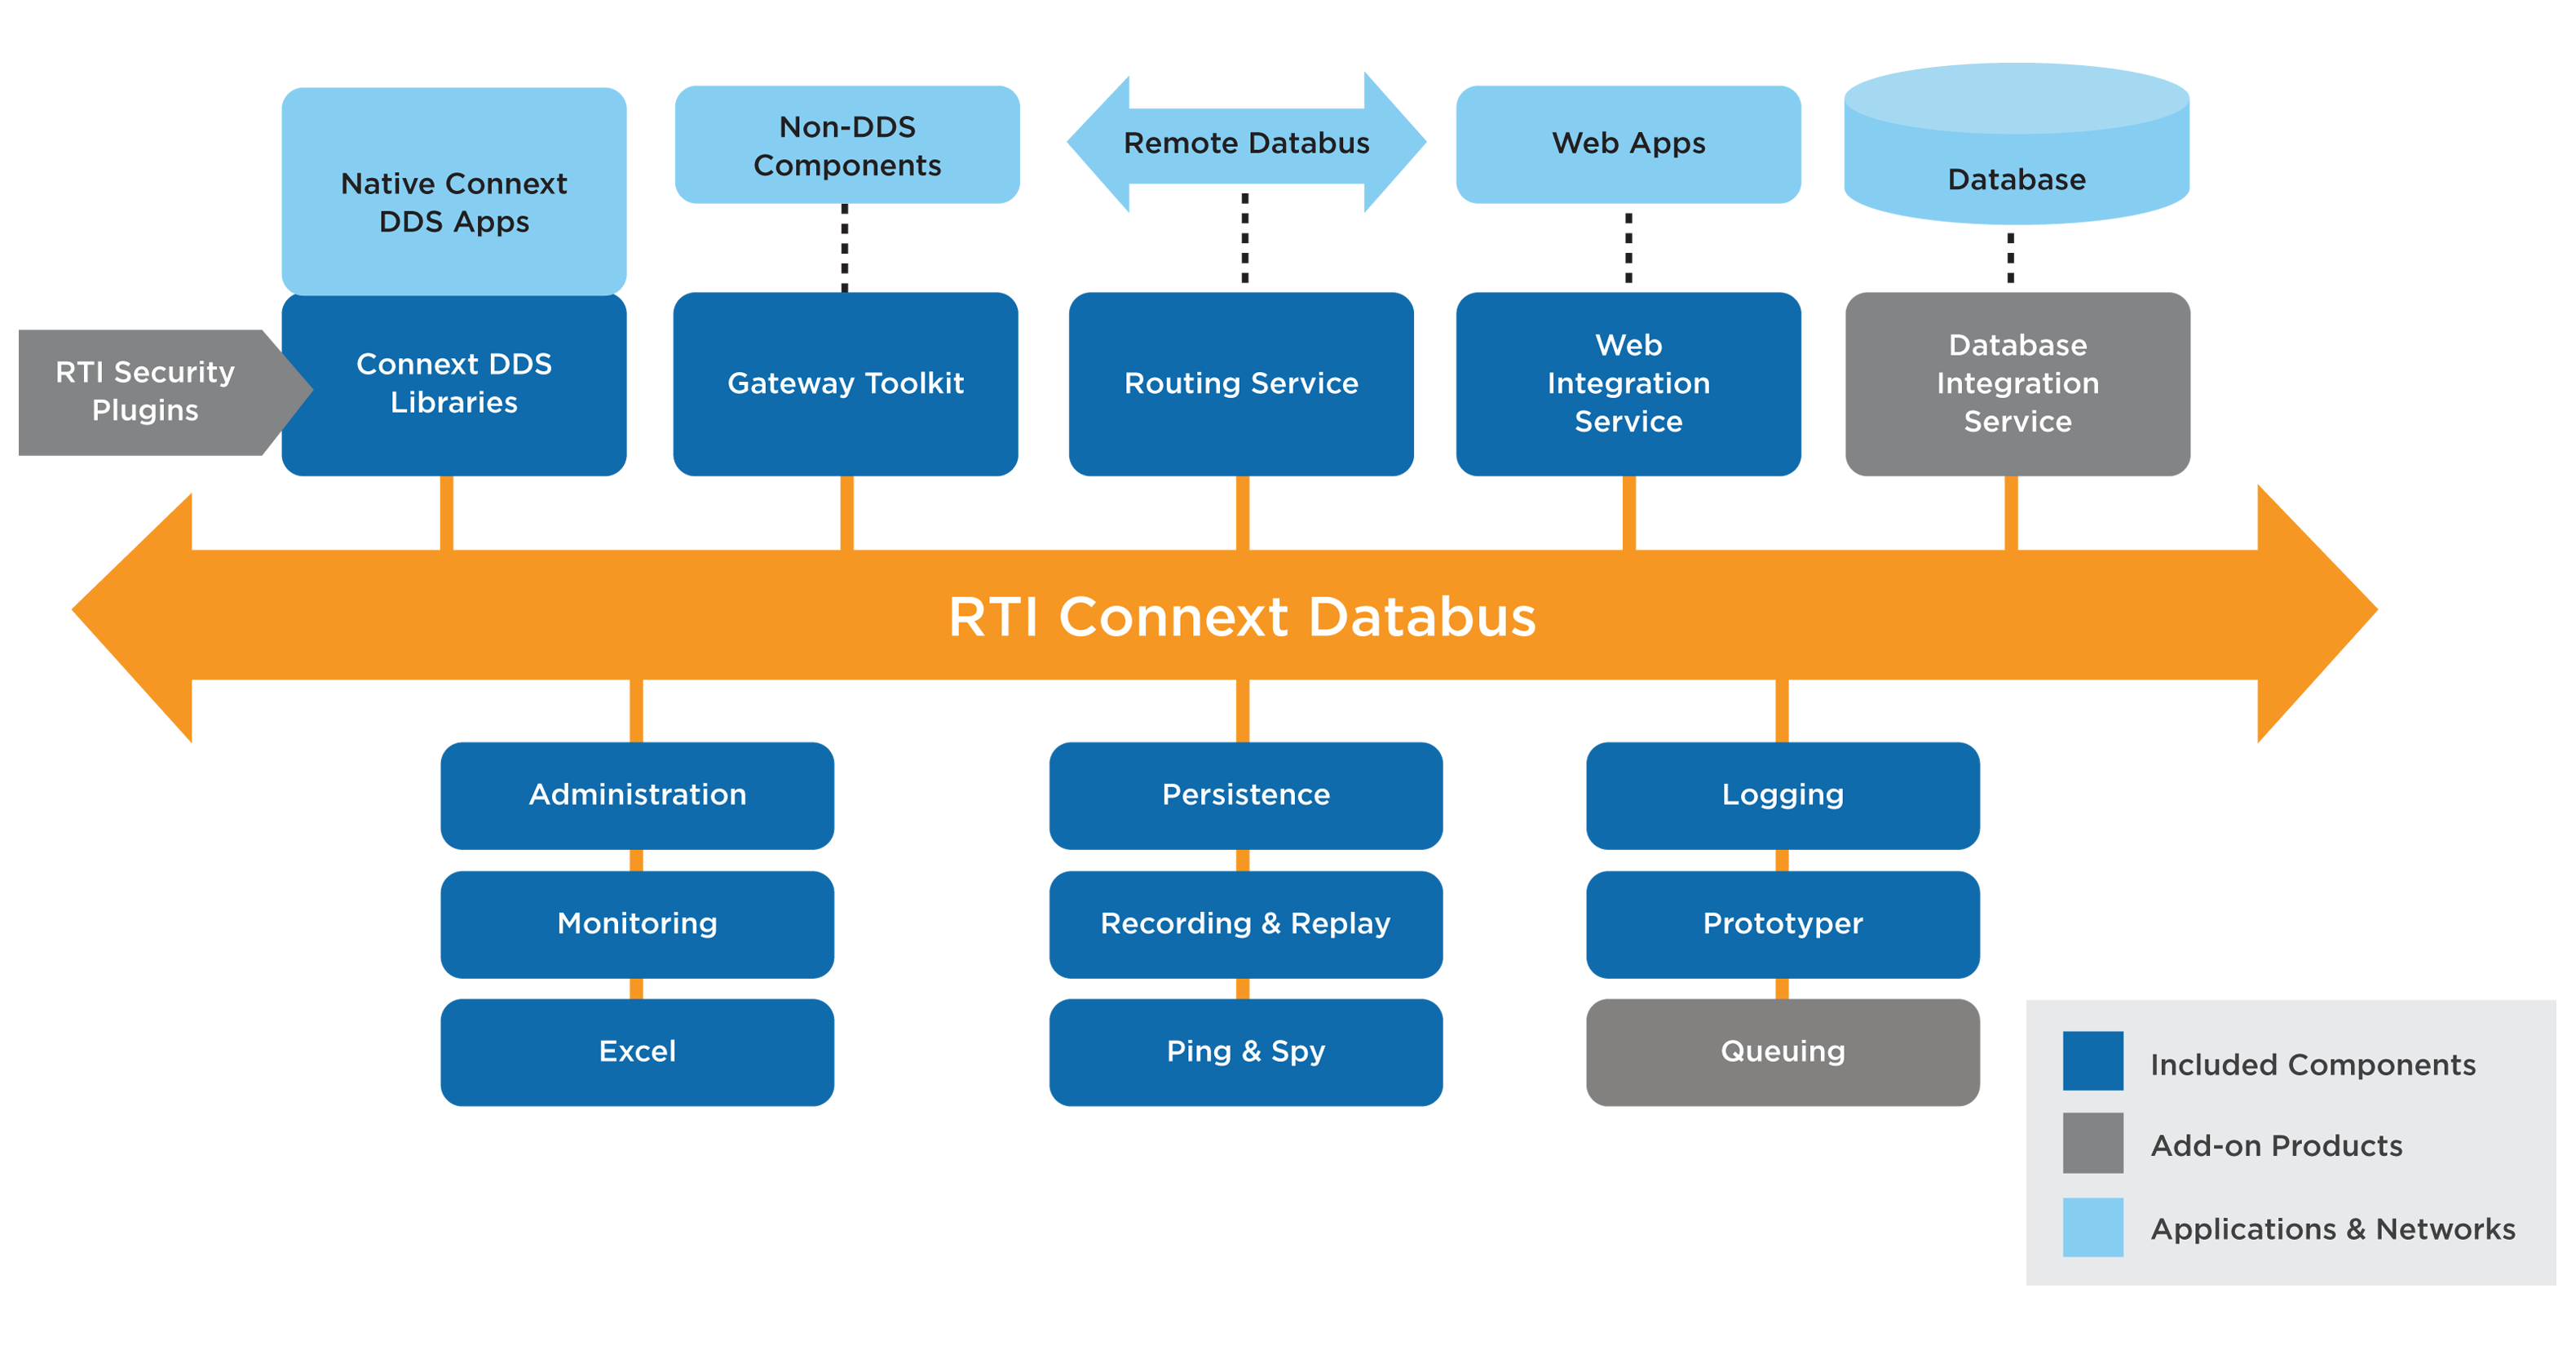 RTI_Diagram_Connext_DDS_Professional